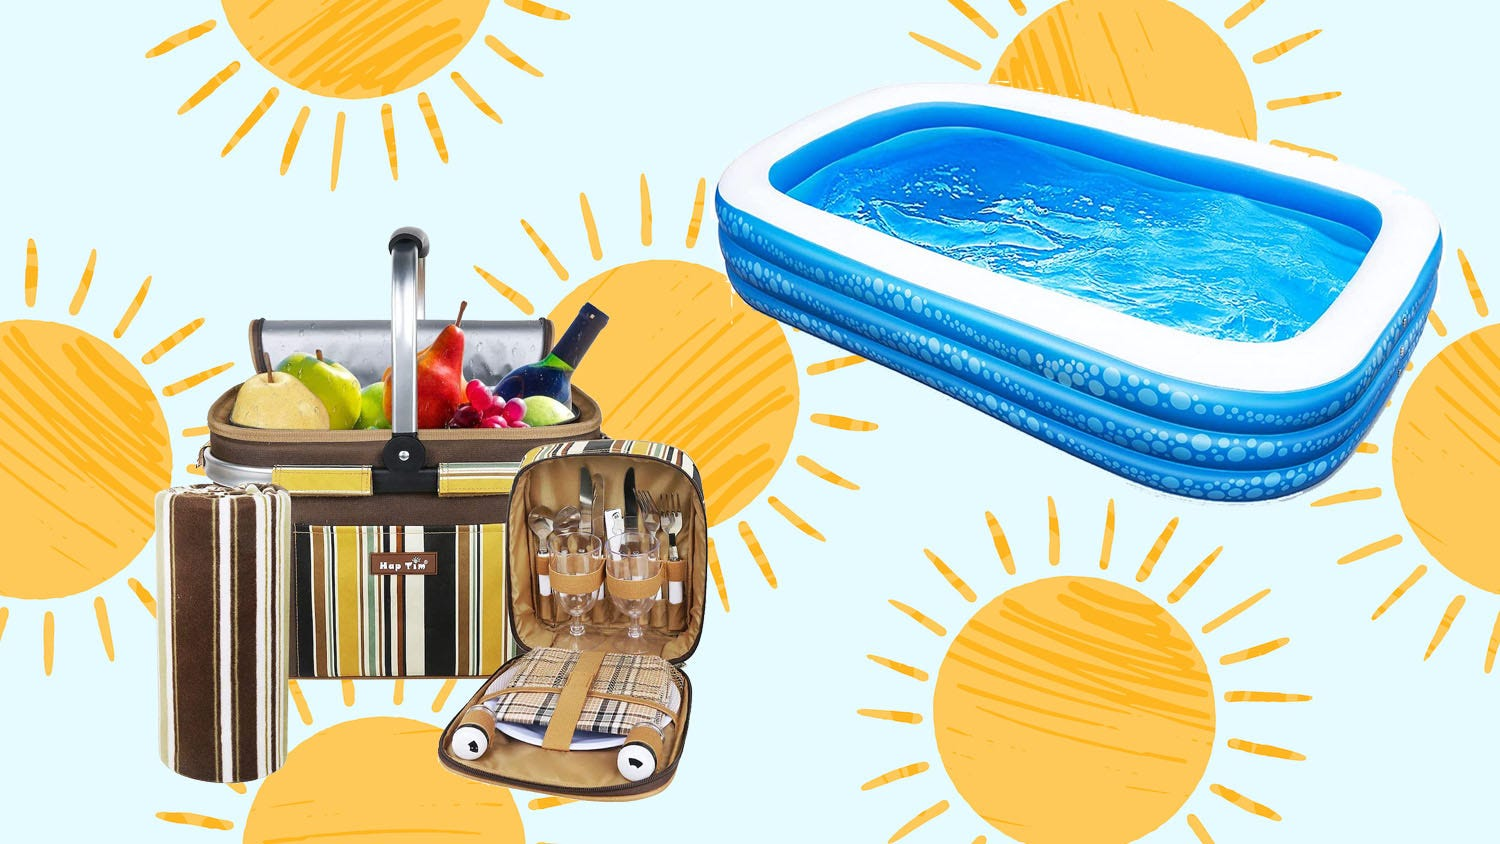 Memorial Day 2021: Amazon is having a secret summer sale right now